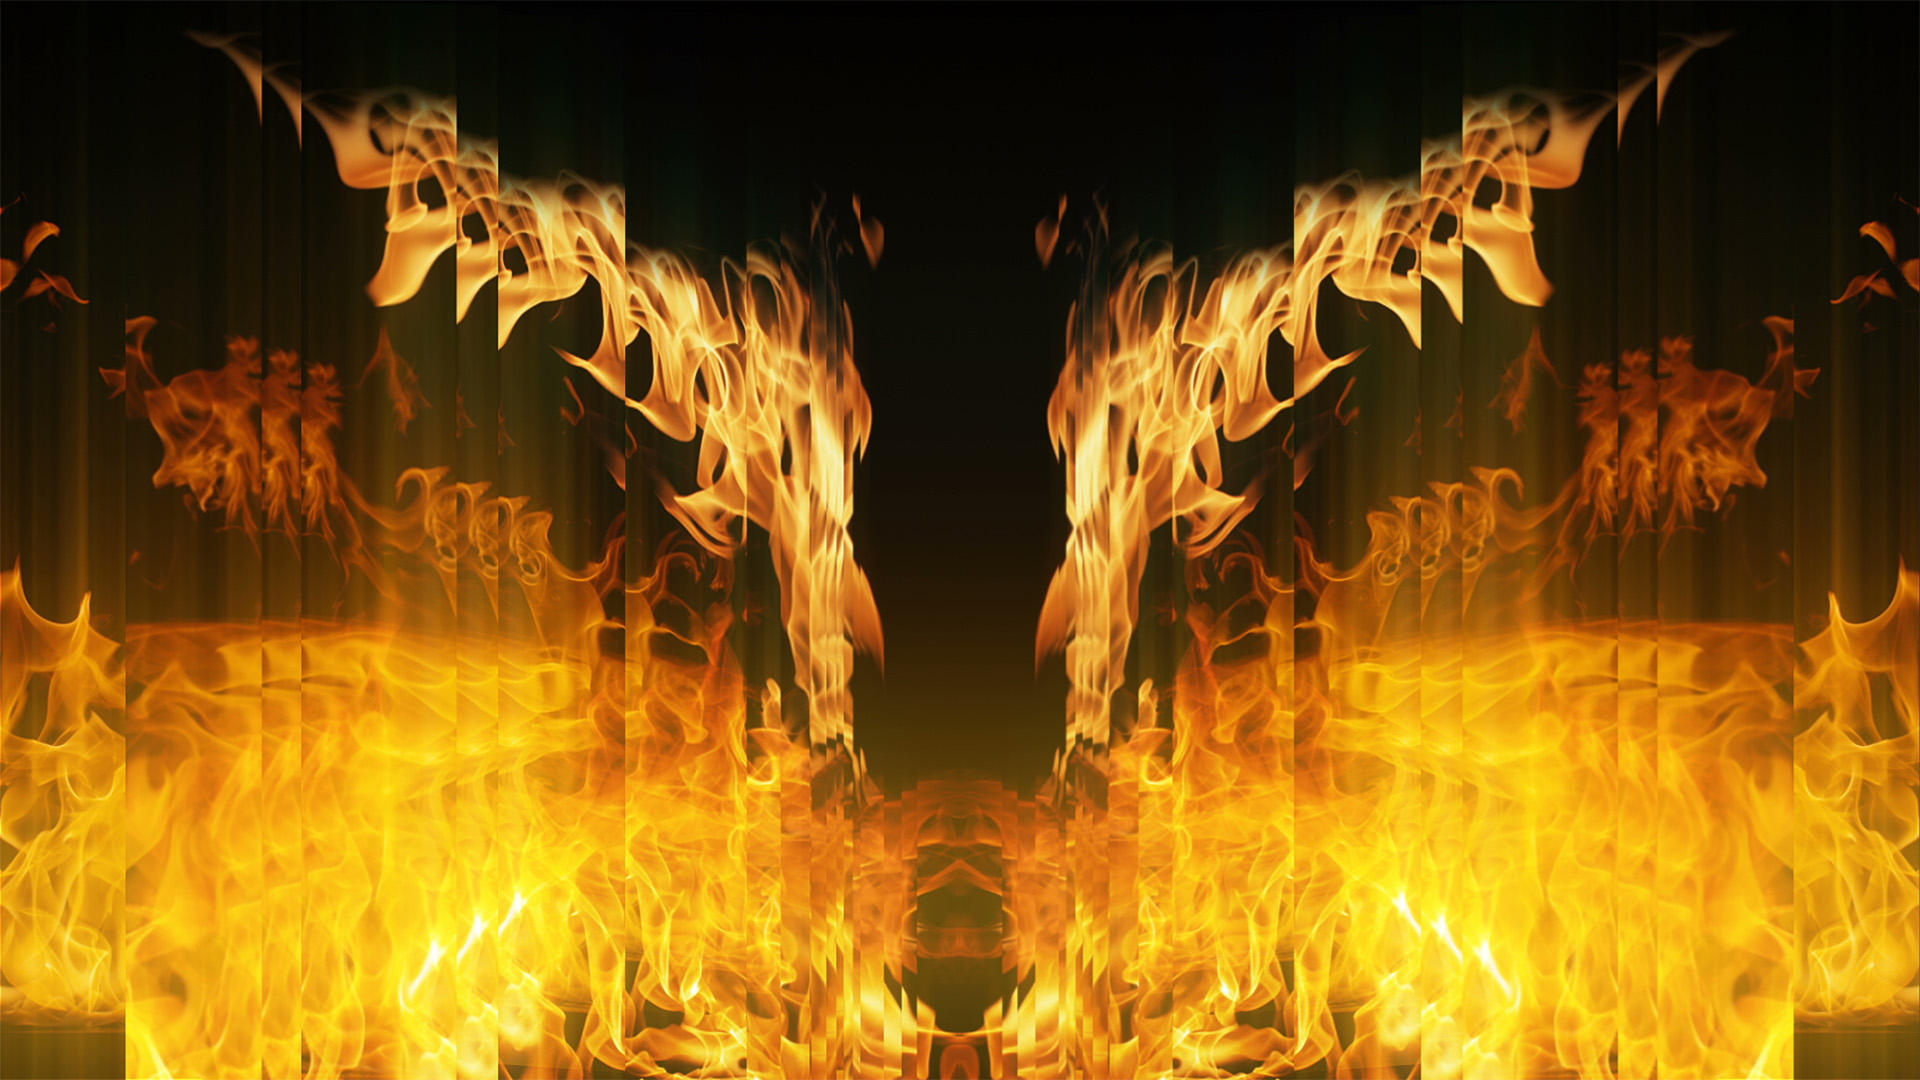 fire flame abstract wallpaper motion background vj loop lime art group alexander kuiava